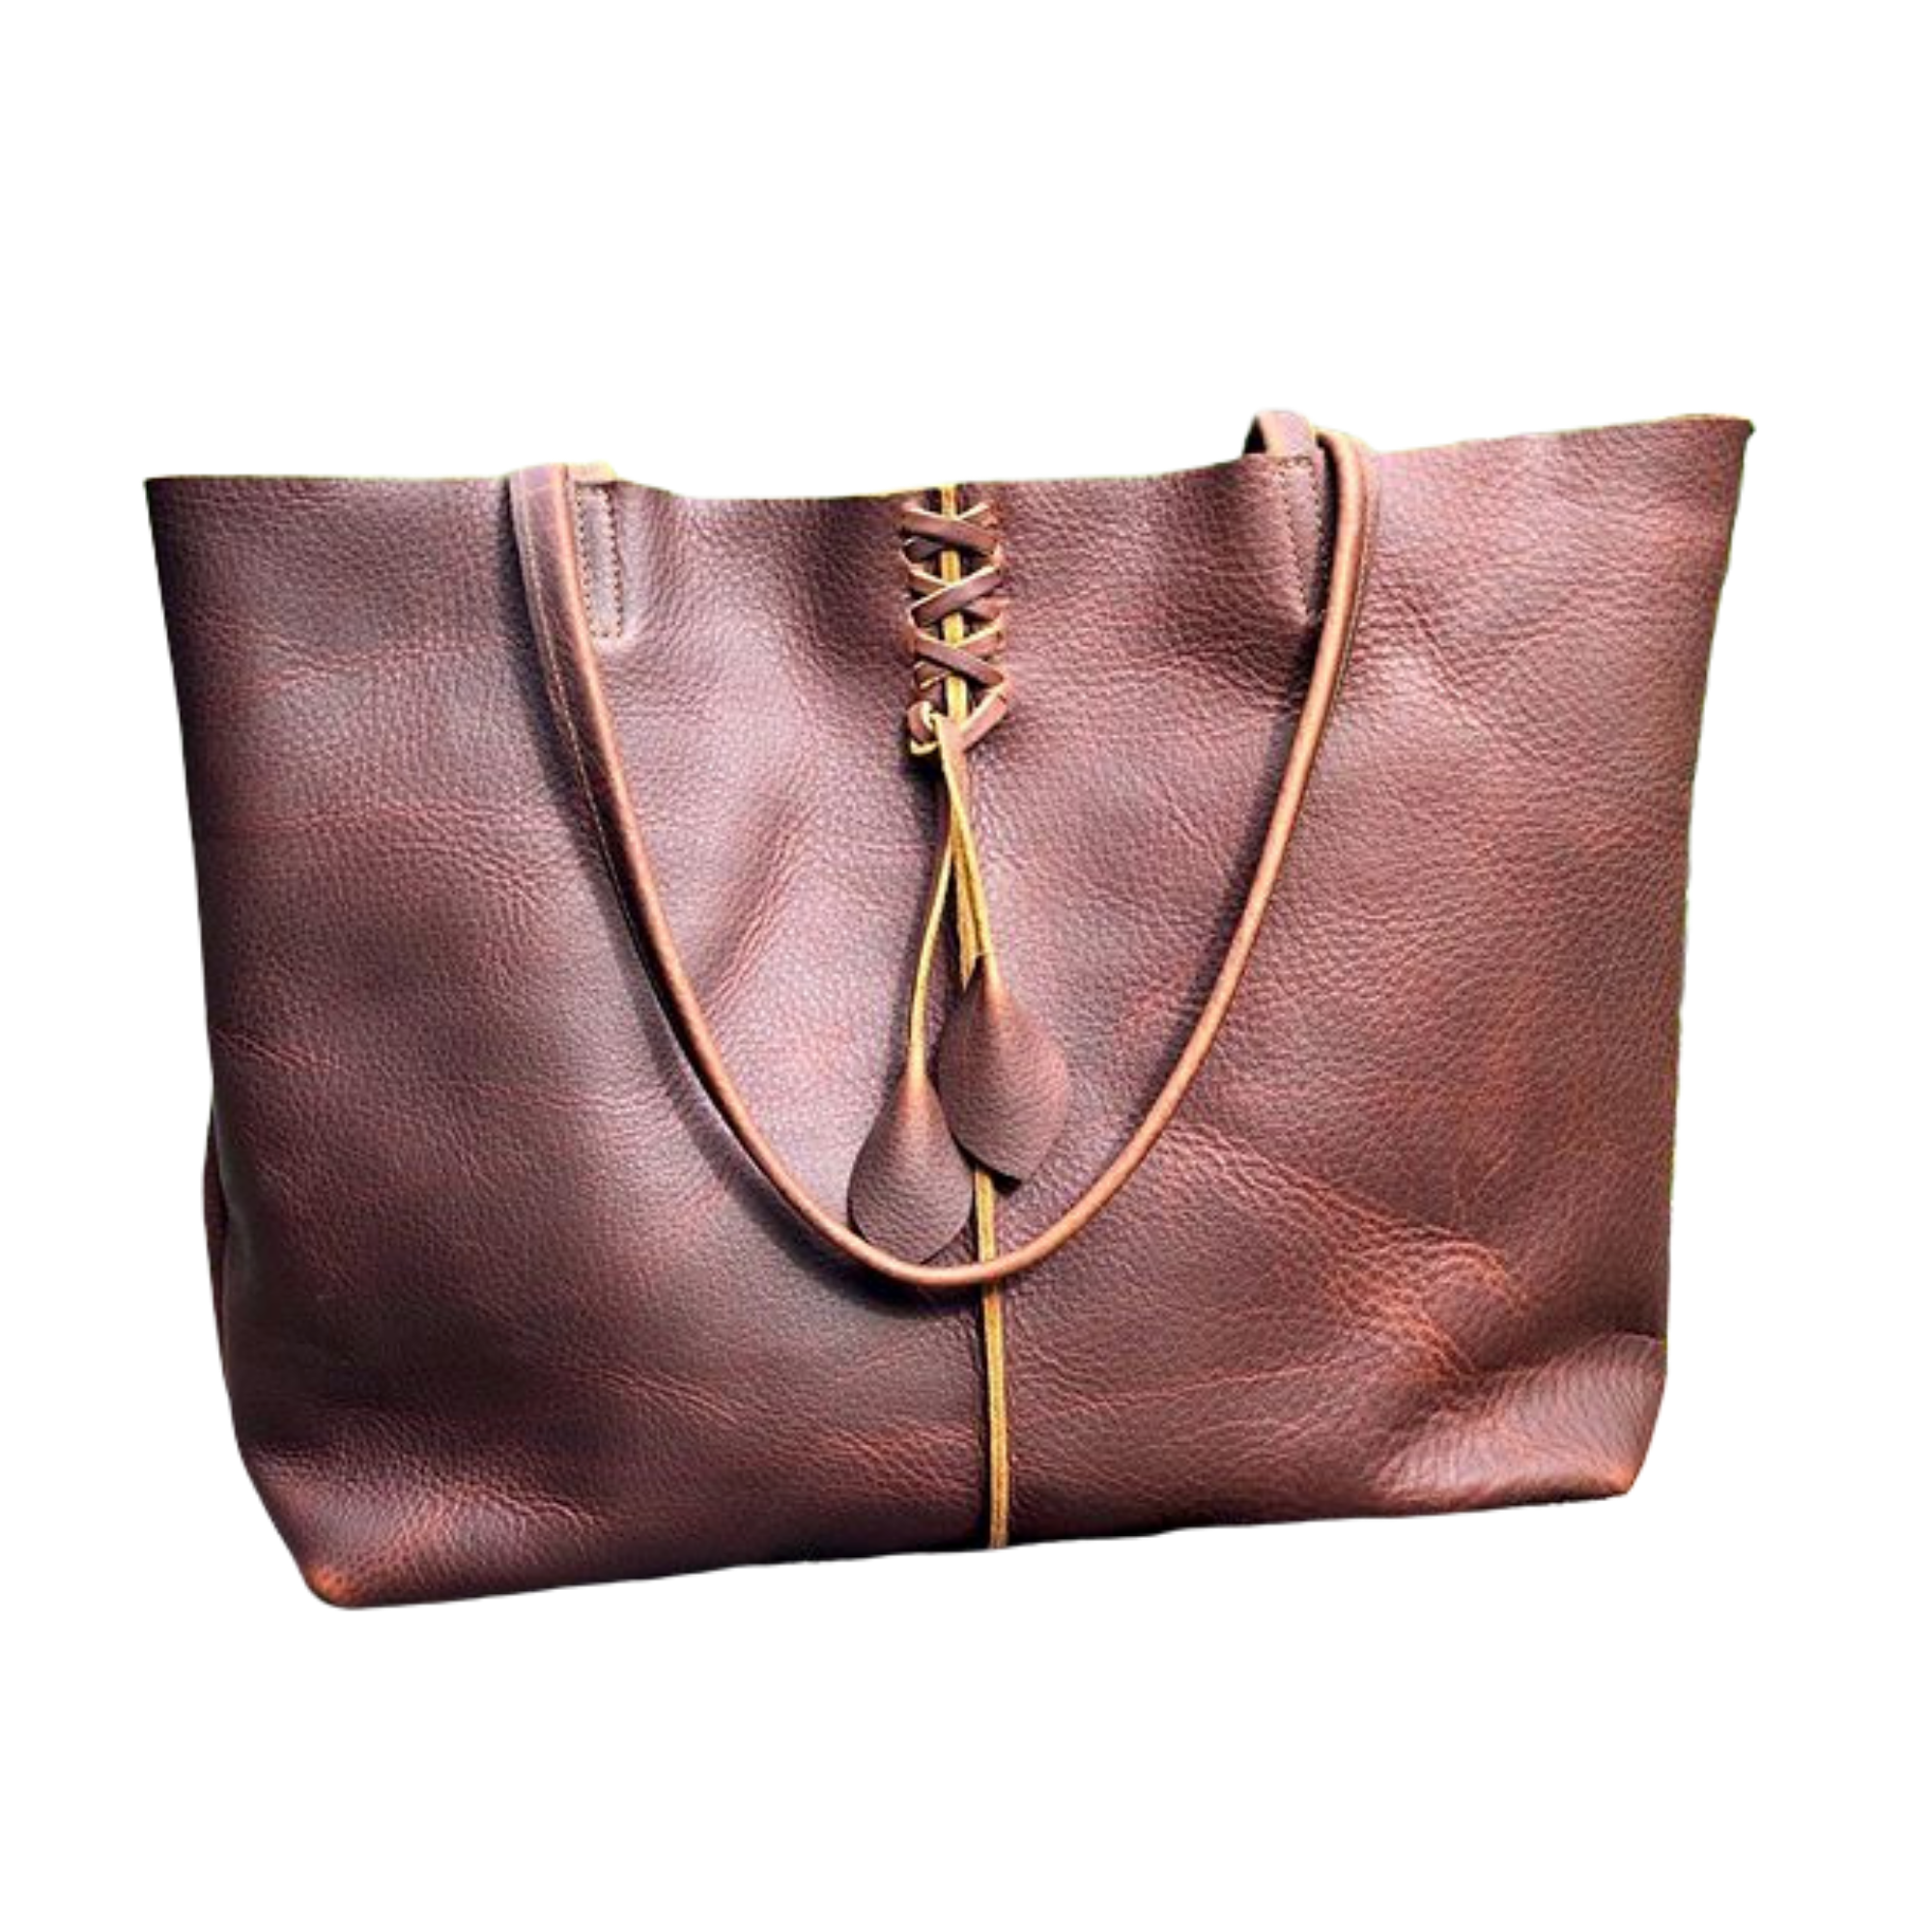 Brown leather bag with leaf detail -Large